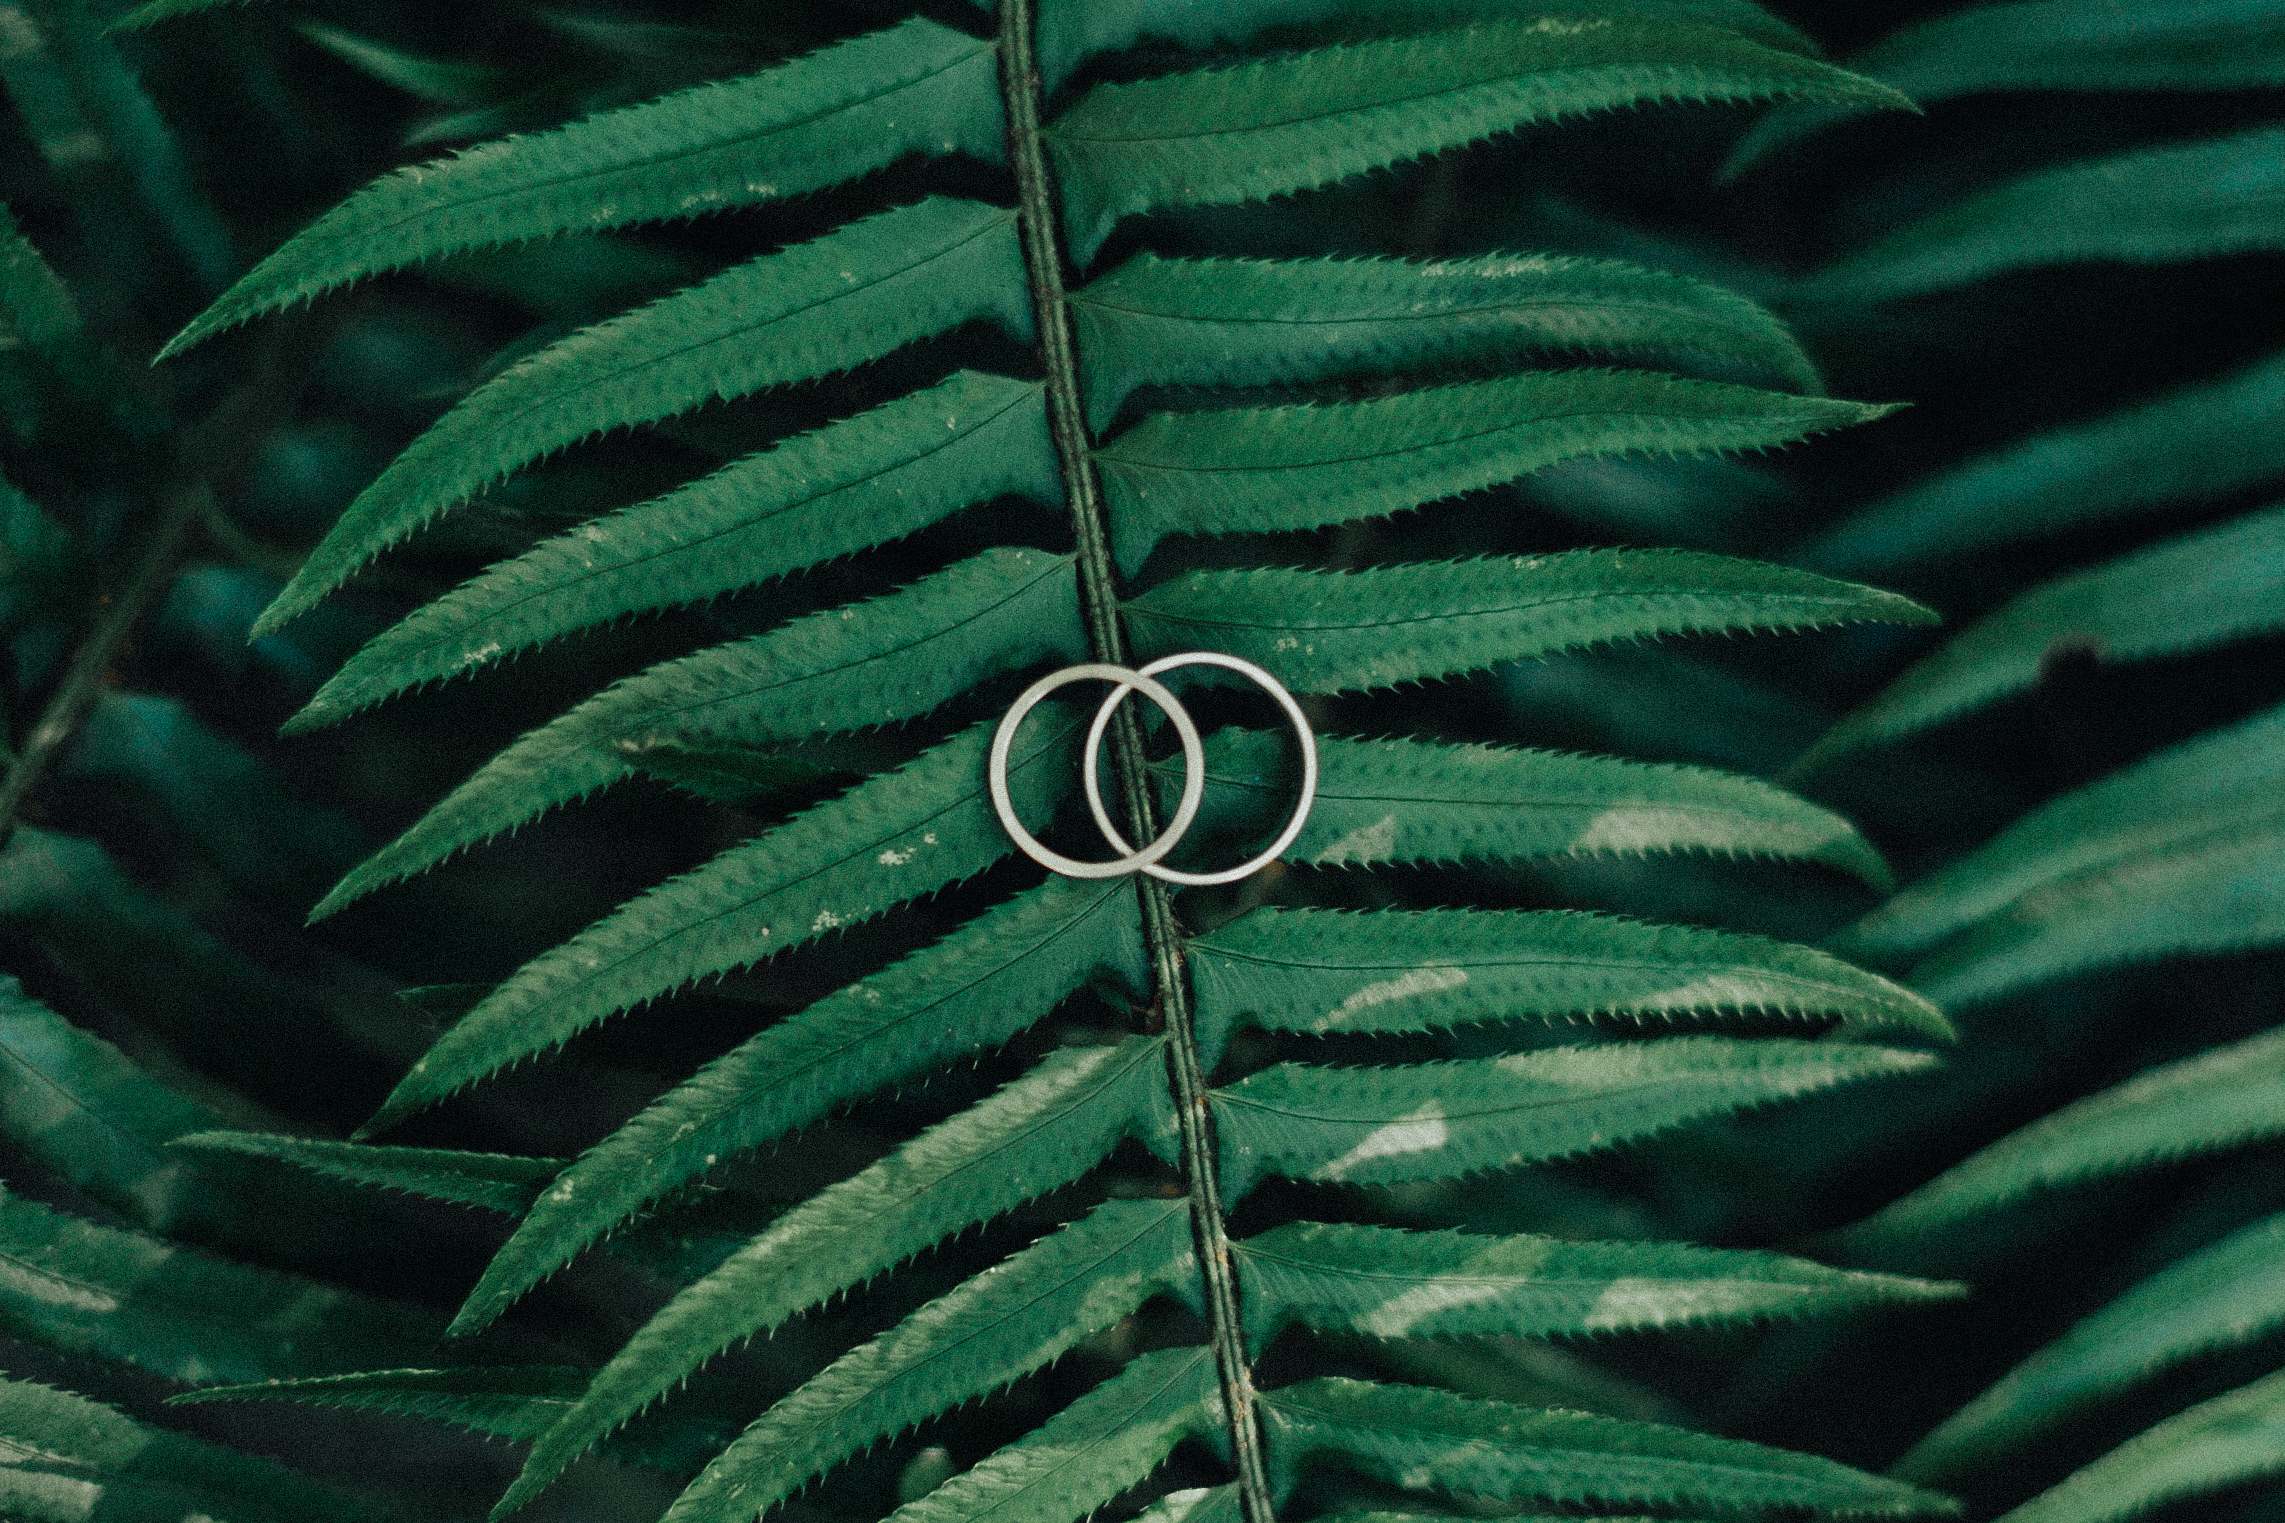 wedding rings sit on top of a green fern